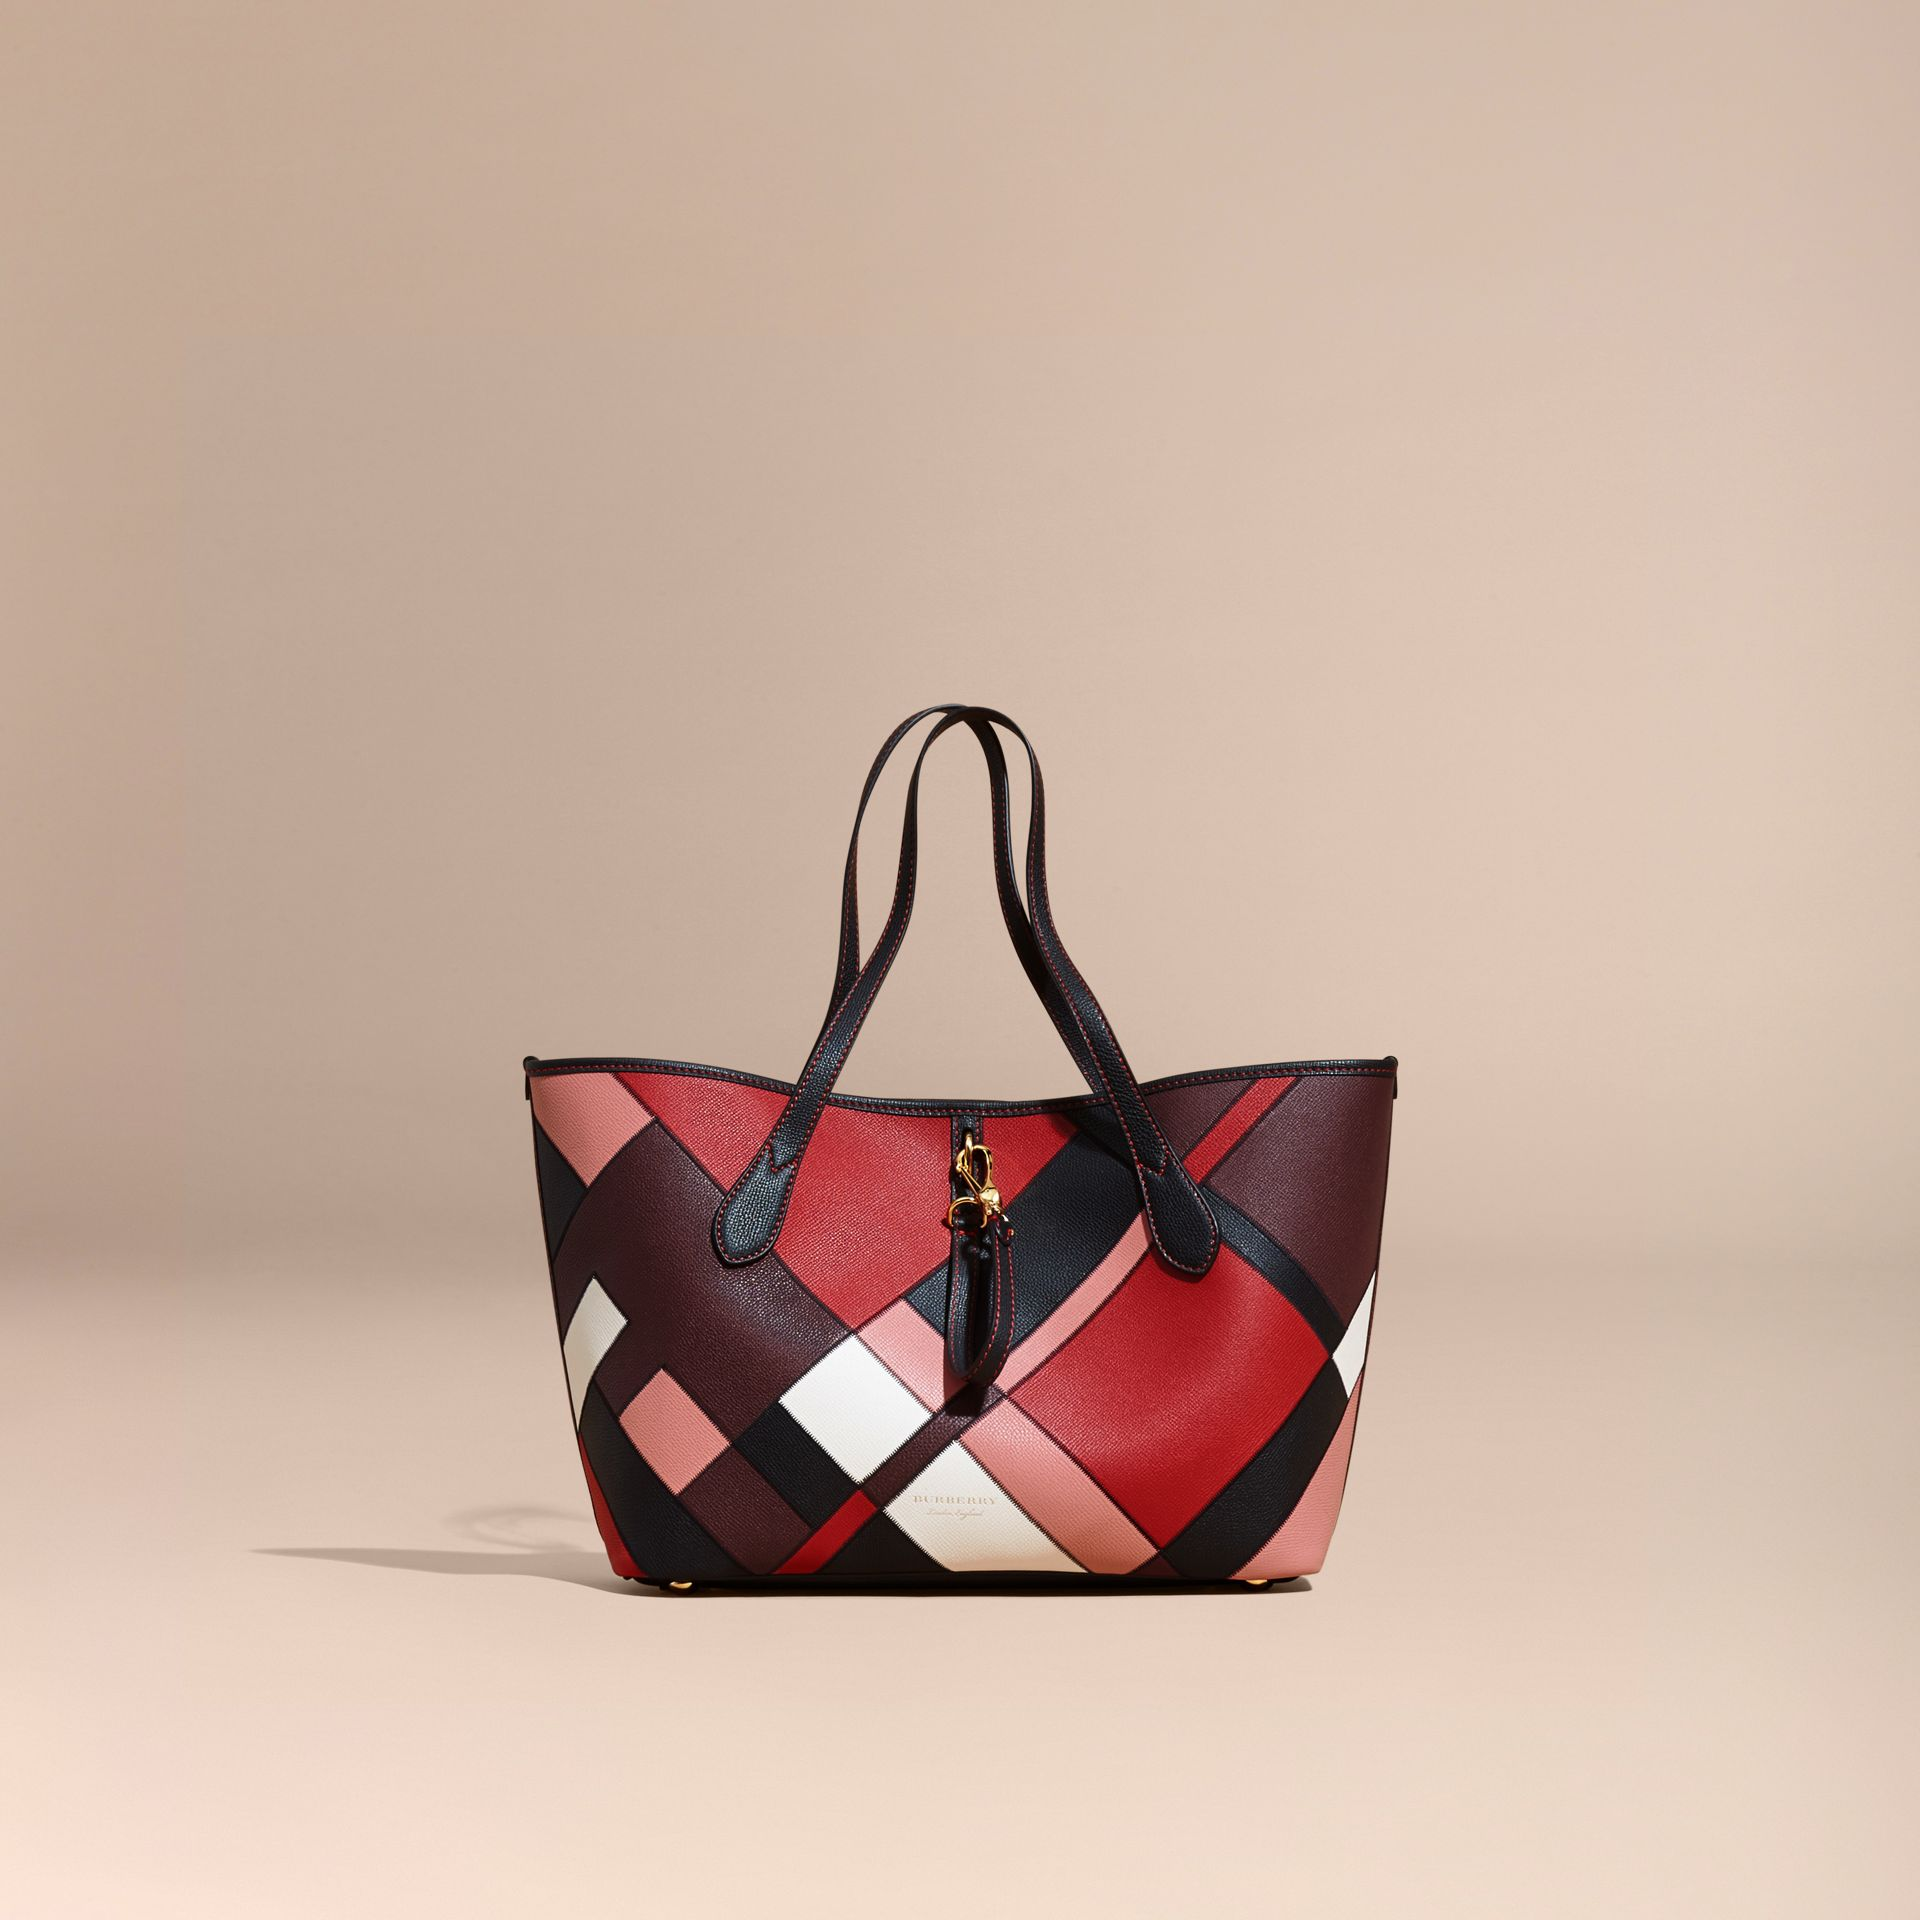 Medium Patchwork Grainy Leather Tote Bag in Pink - Women | Burberry - gallery image 8